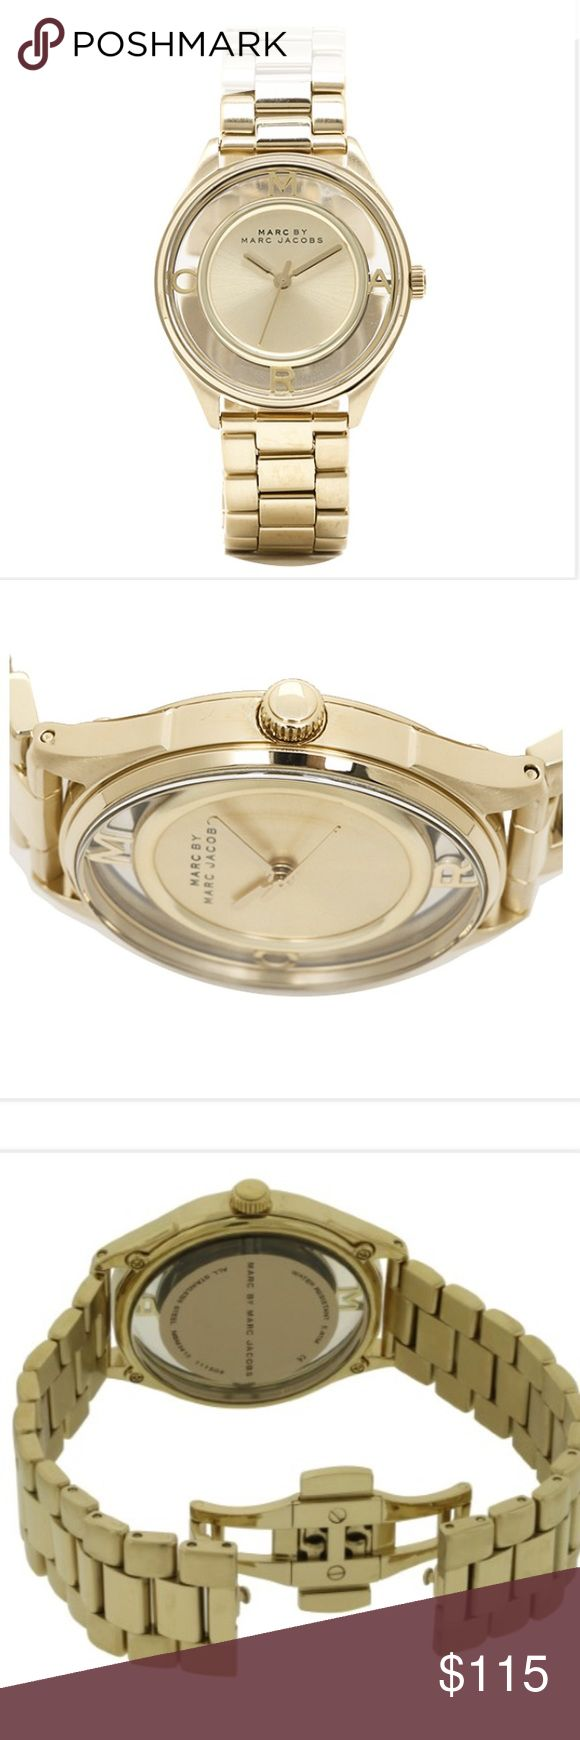 Marc By Marc Jacobs women's see through watch Beautiful Tether teaser bracelet watch MBM3413 , face size 3.6 cmx 3.6cm x thickness 1cm , this watch is also water resistant up to 5 ATM. New with all original packaging. Reasonable offers only and no trades please. 💯authentic. Marc by Marc Jacobs Accessories Watches